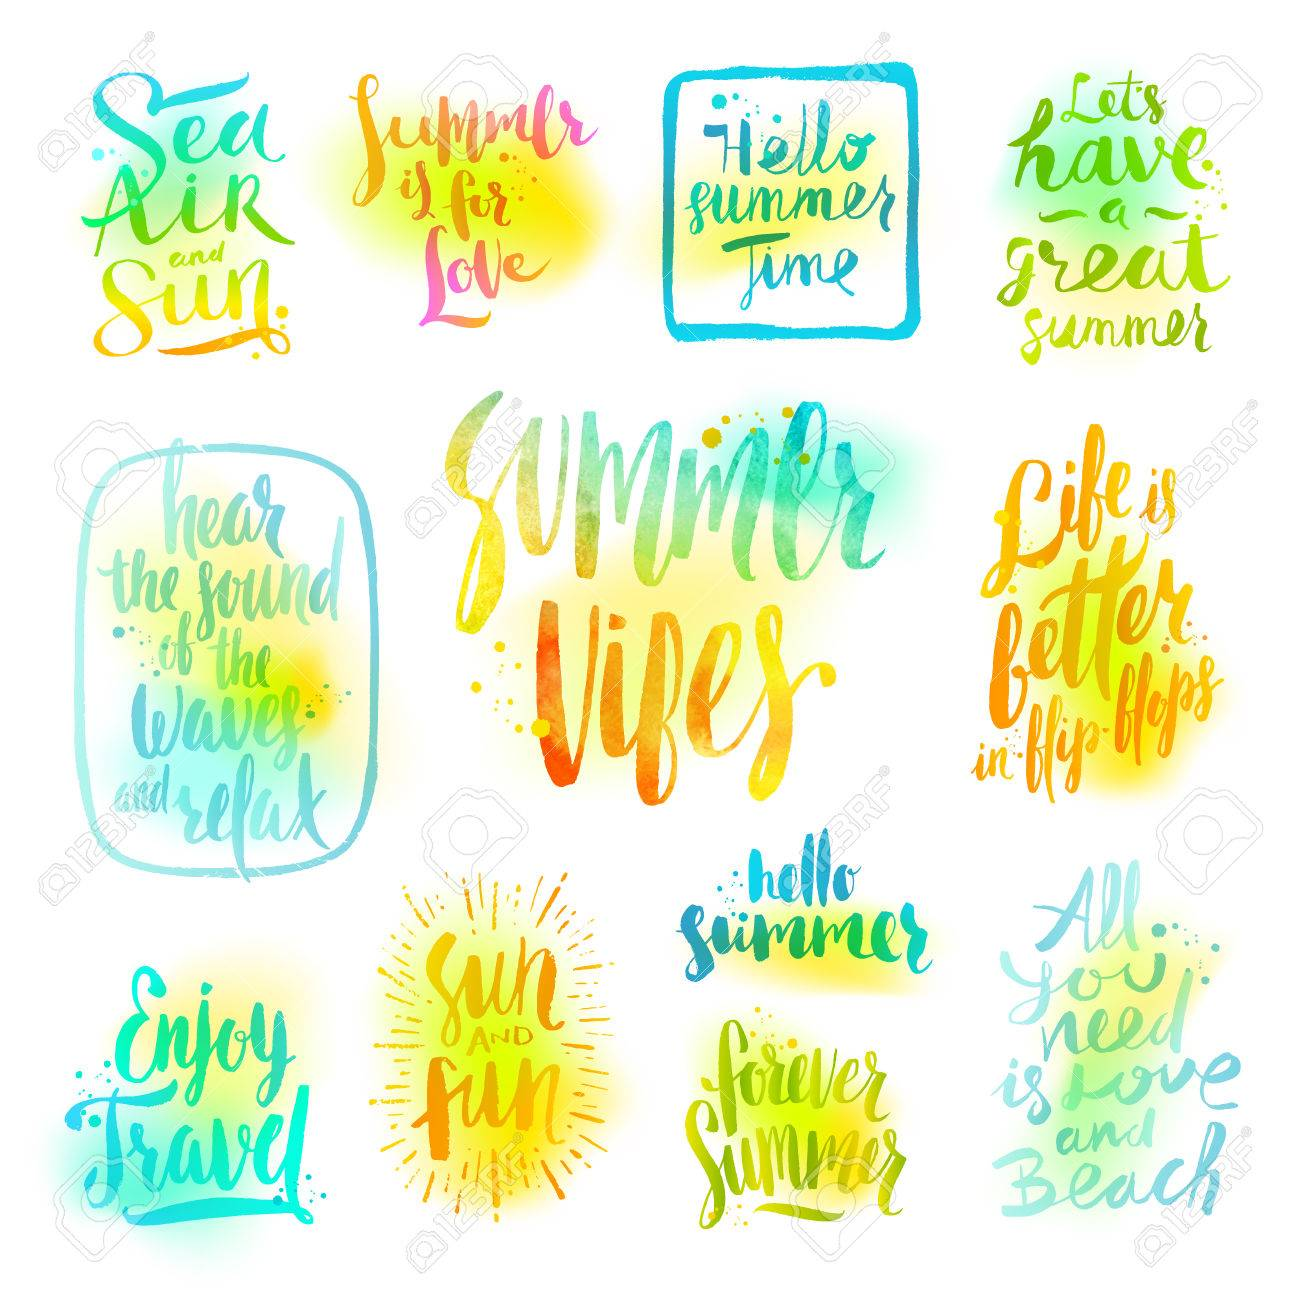 91 summer vacation quotes hello summer images and happy cards summer holidays and vacation greetings quotes phrases set ofcalligraphy stock vector m4hsunfo